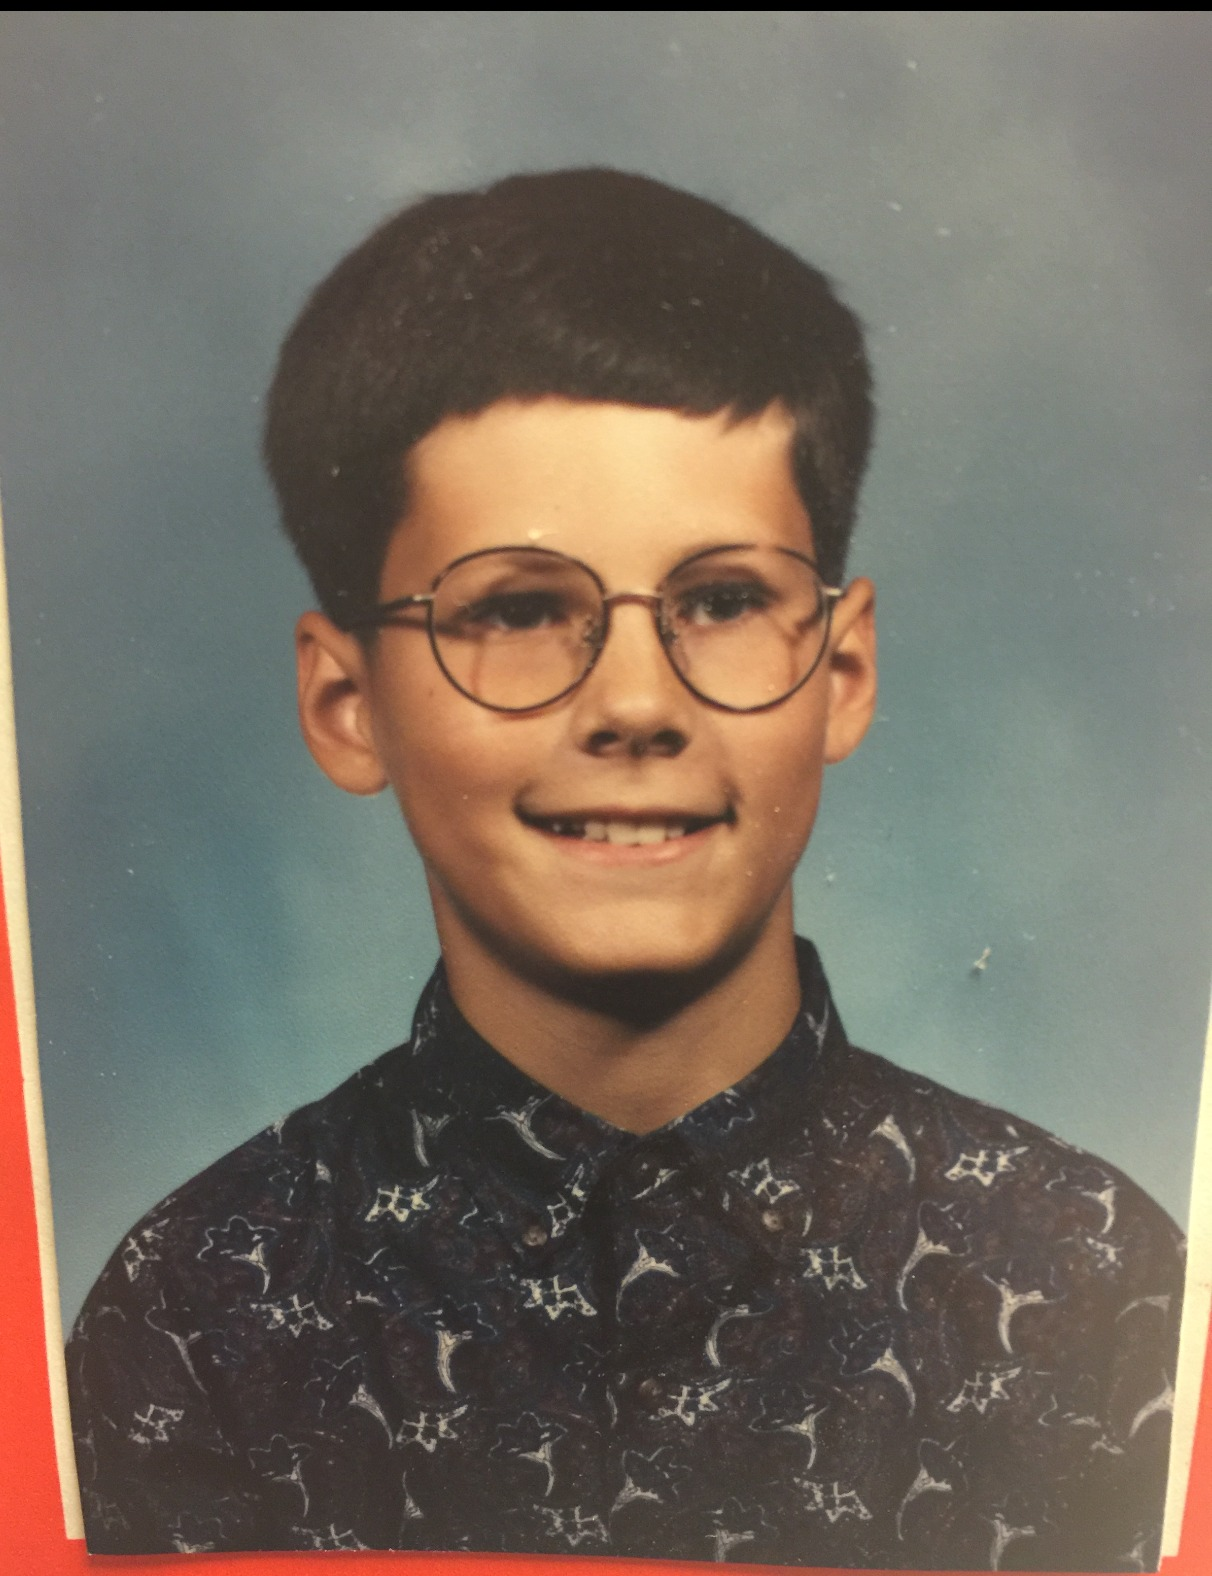 , Show & Tell Tuesday: Worst School Pictures